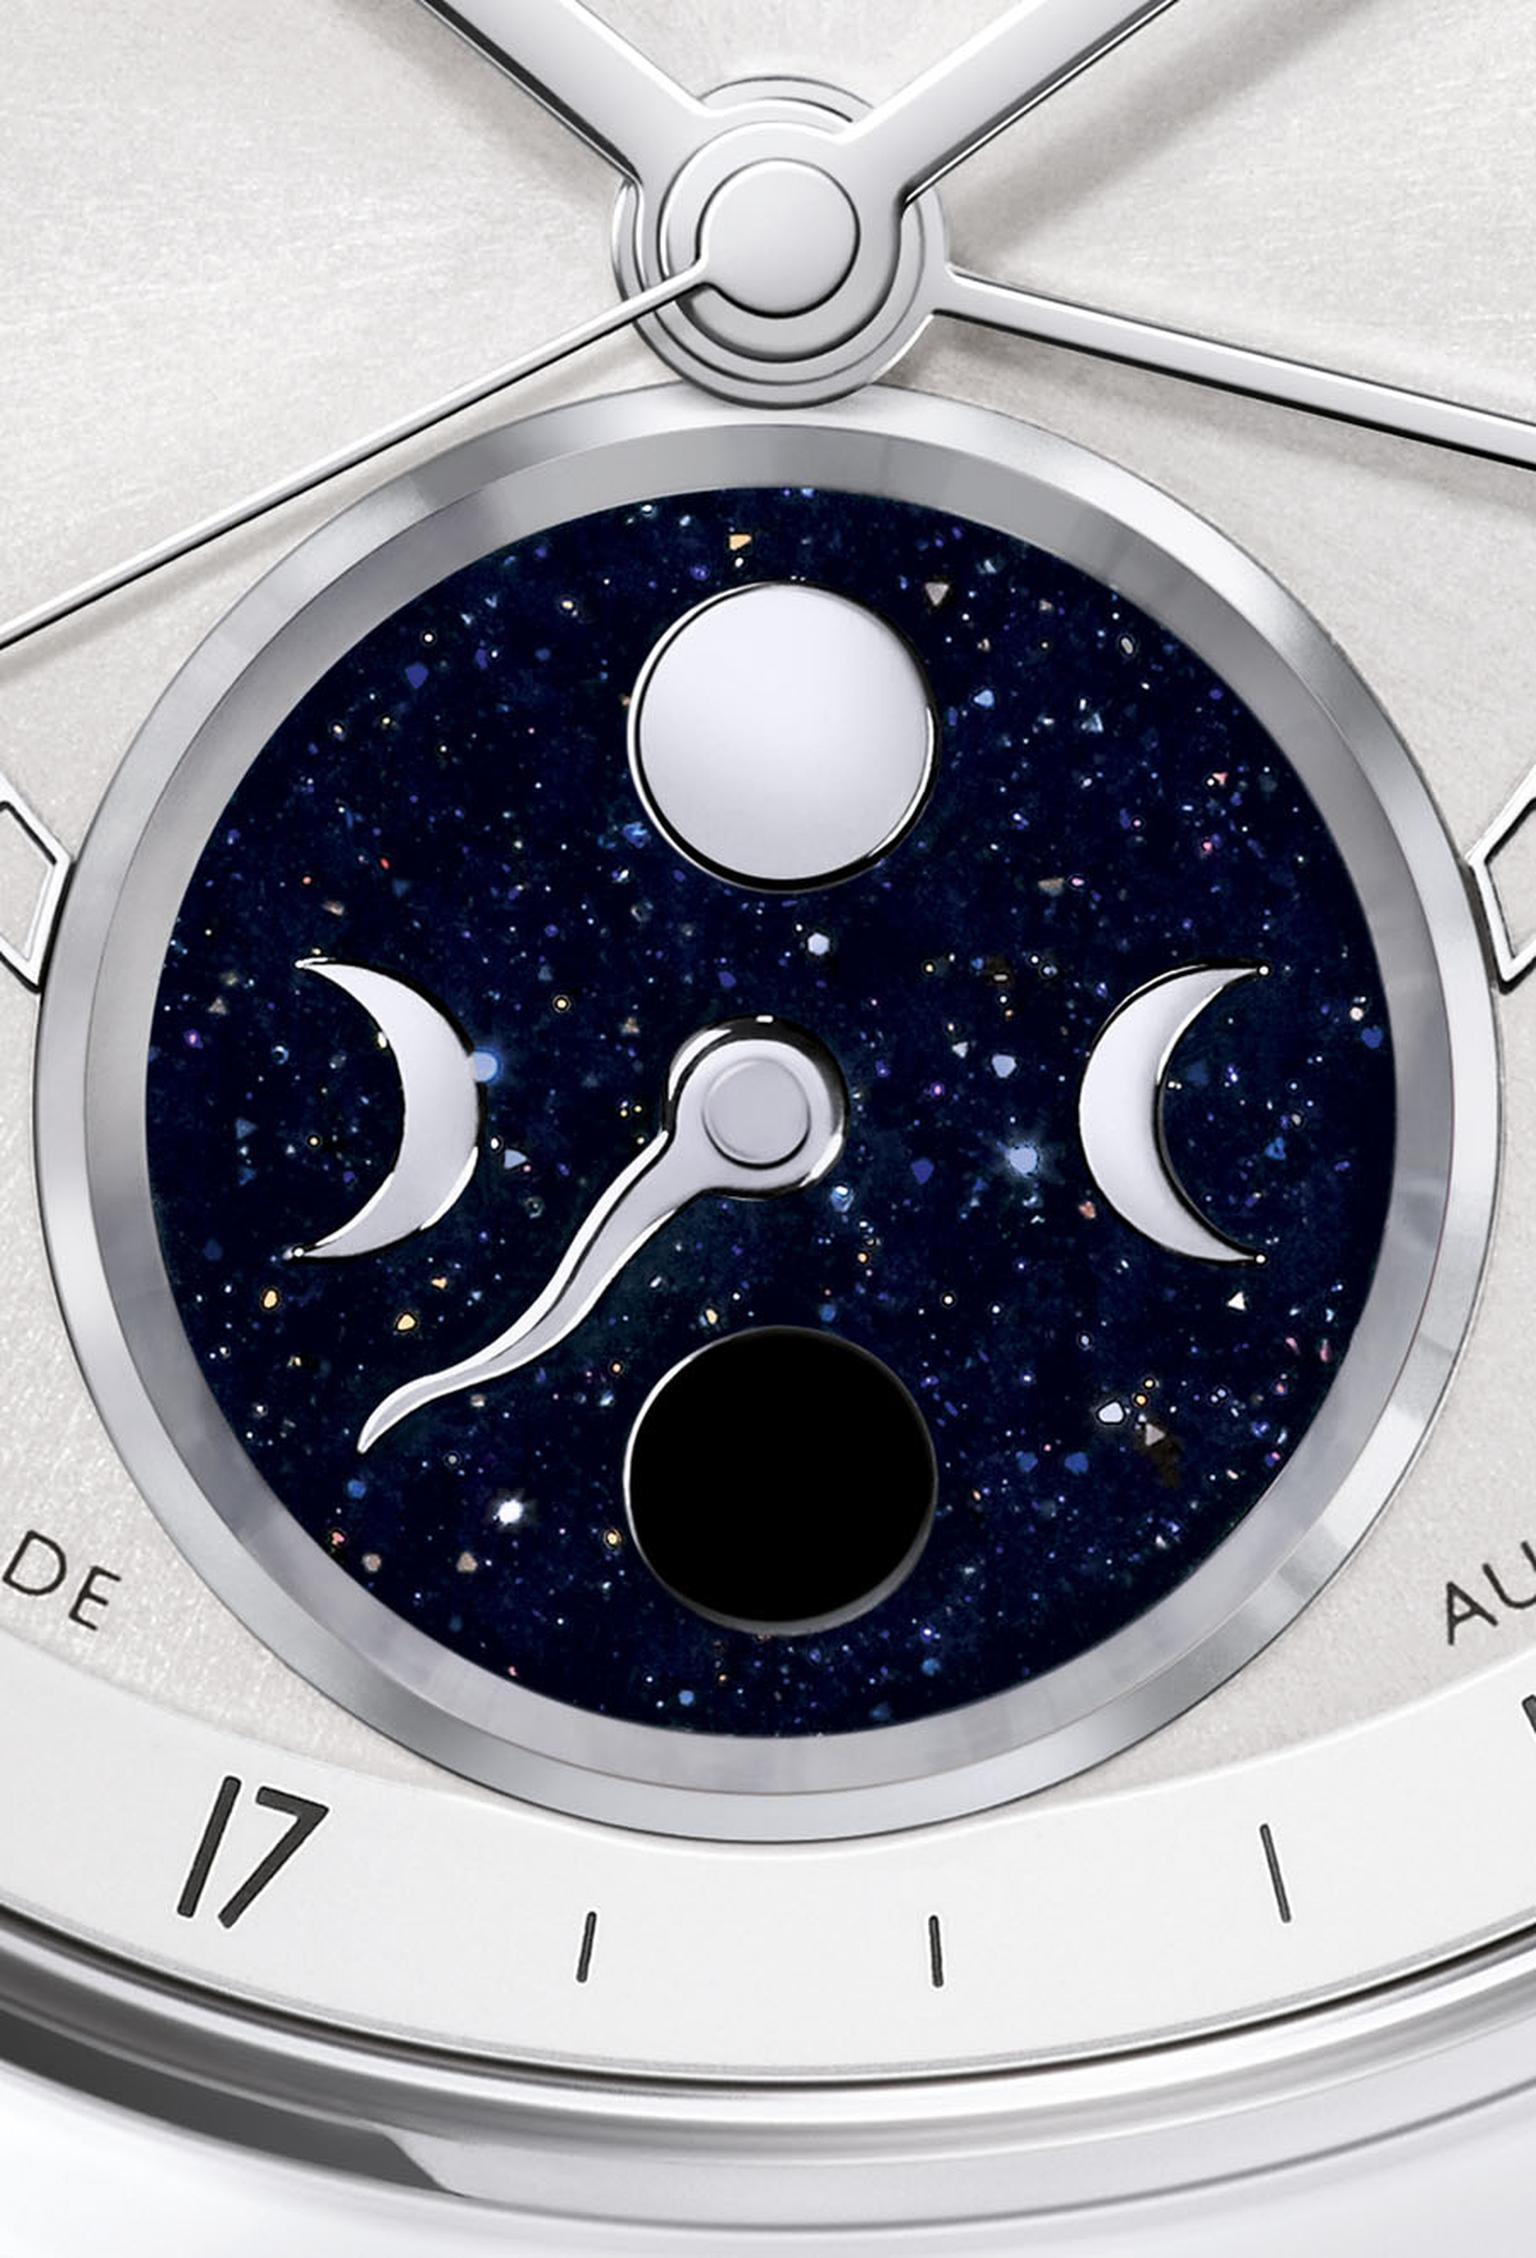 ChanelJ12MoonphaseWatch21.jpg